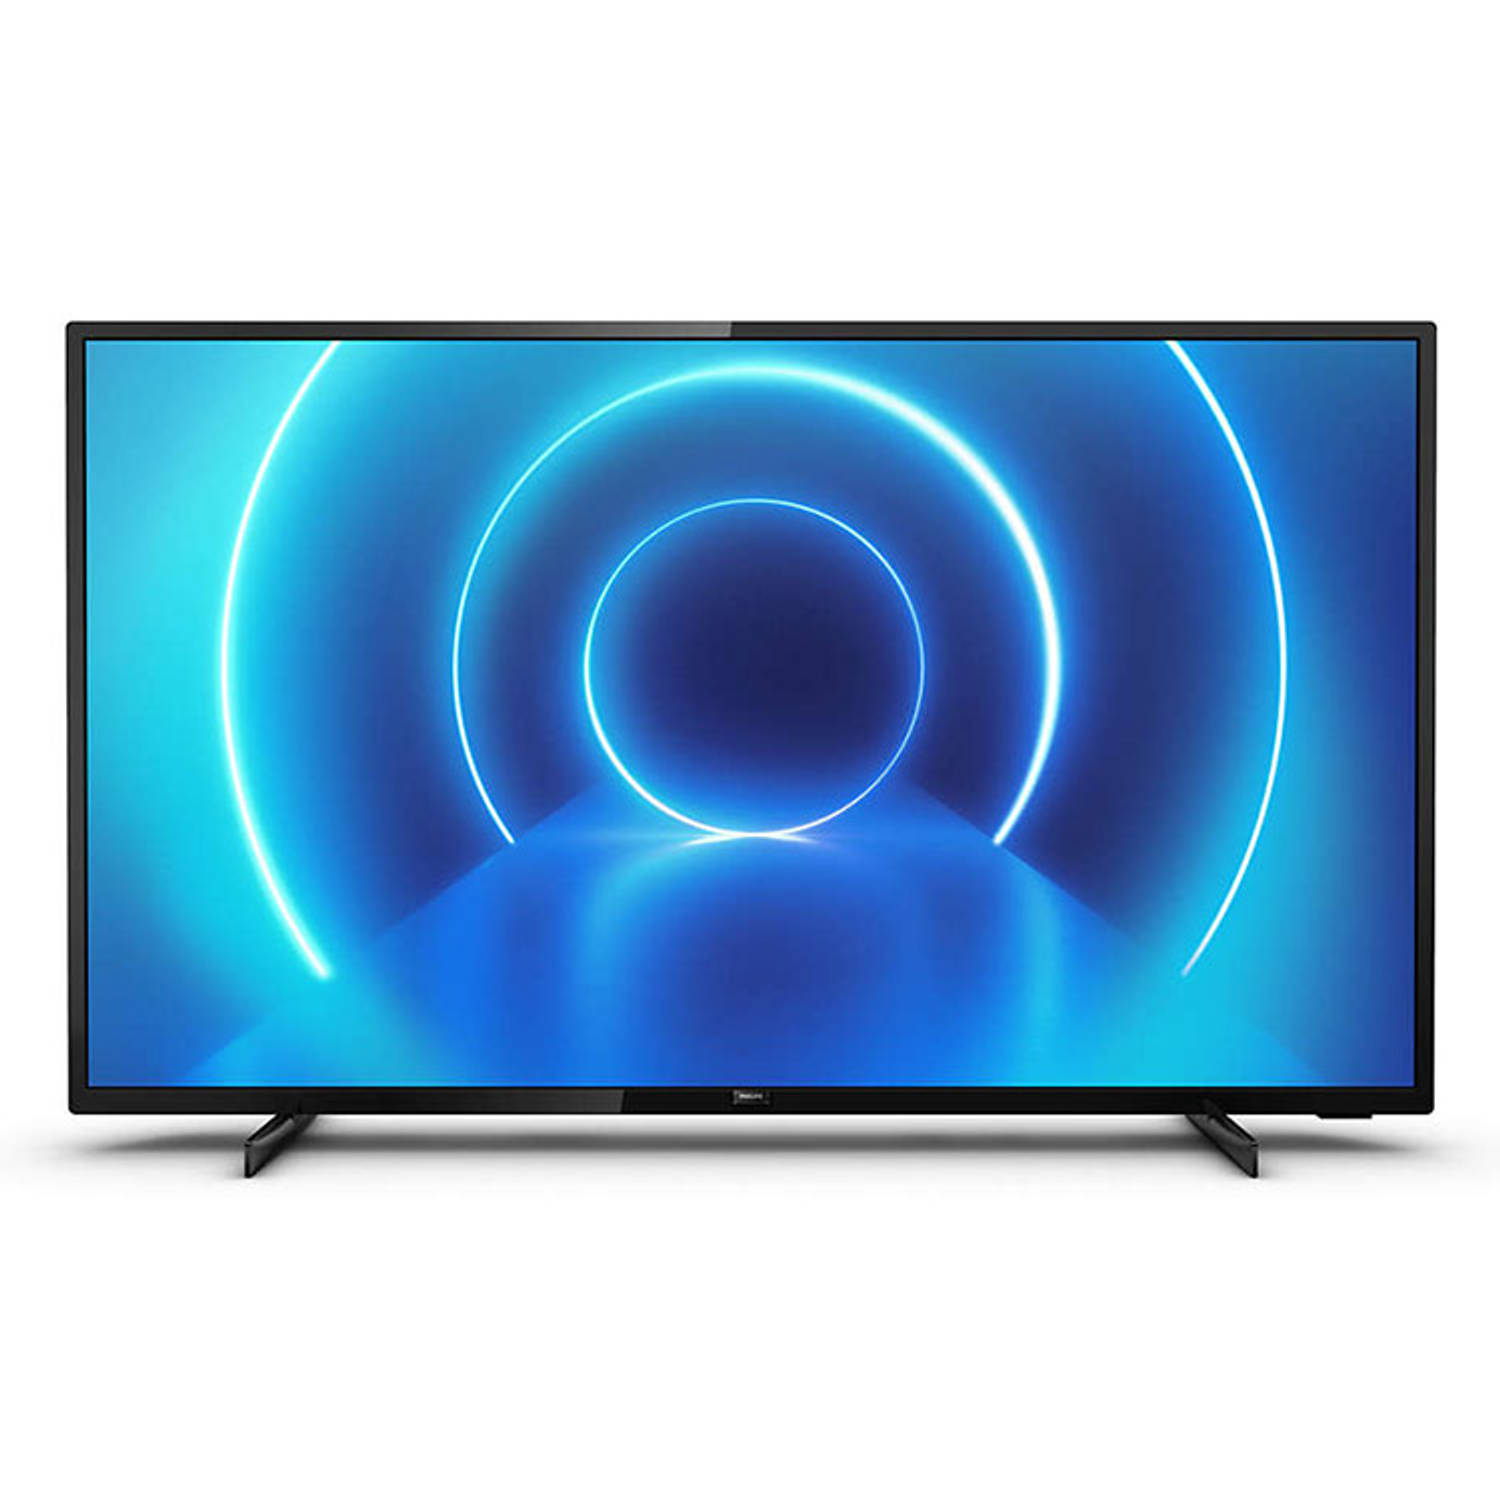 Philips 70PUS7505 - 4K HDR LED Smart TV (70 inch)